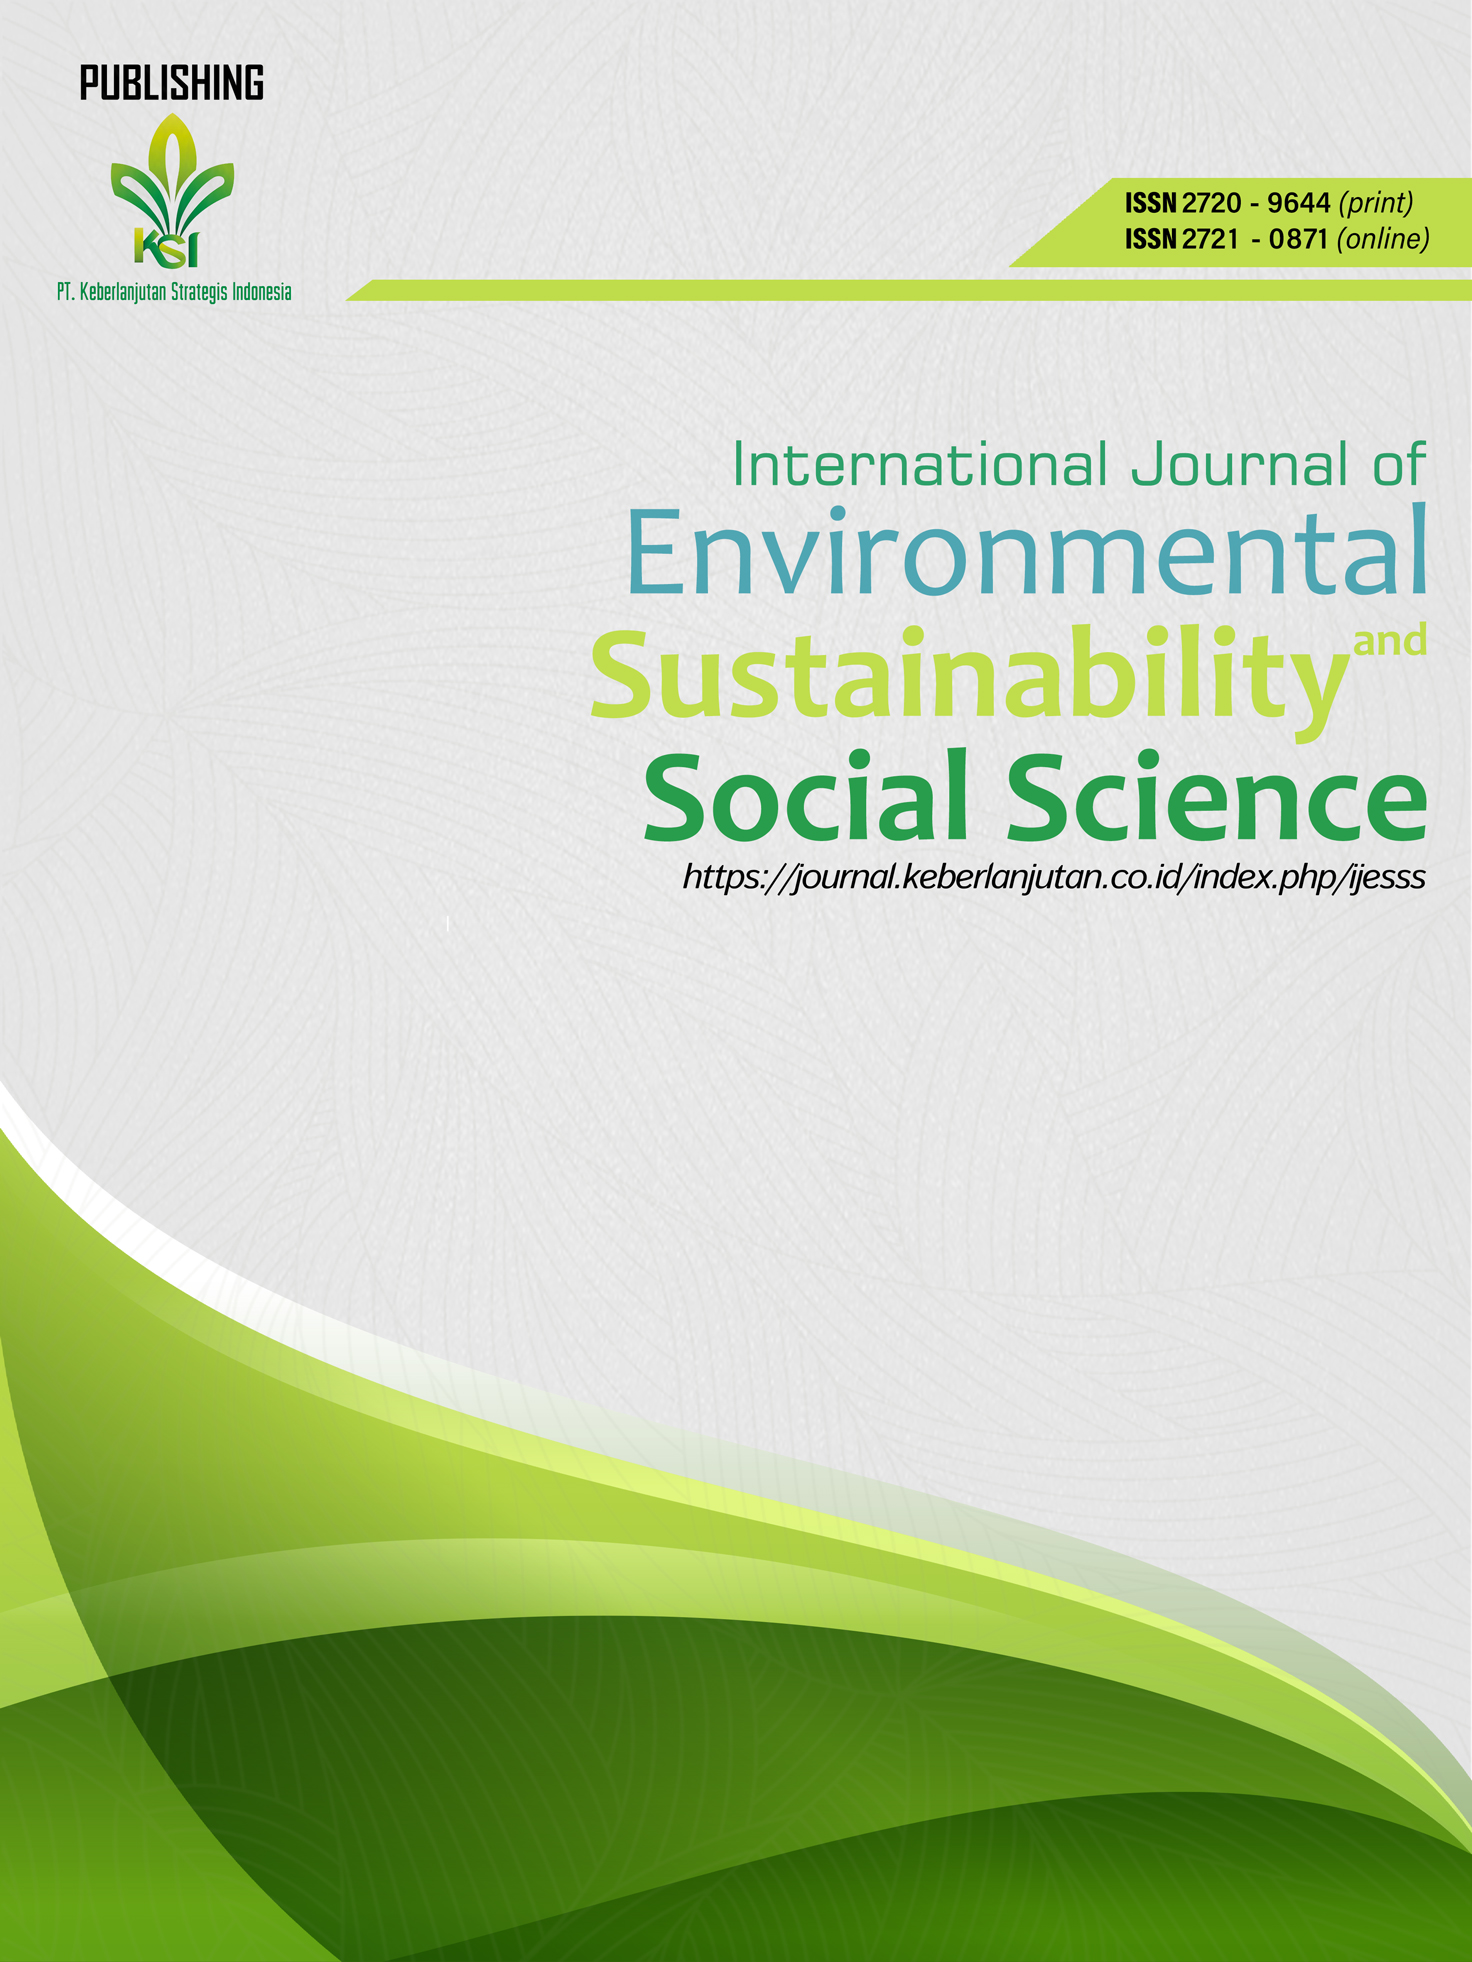 View Vol. 1 No. 1 (2020): International Journal of Environmental, Sustainability, and Social Science